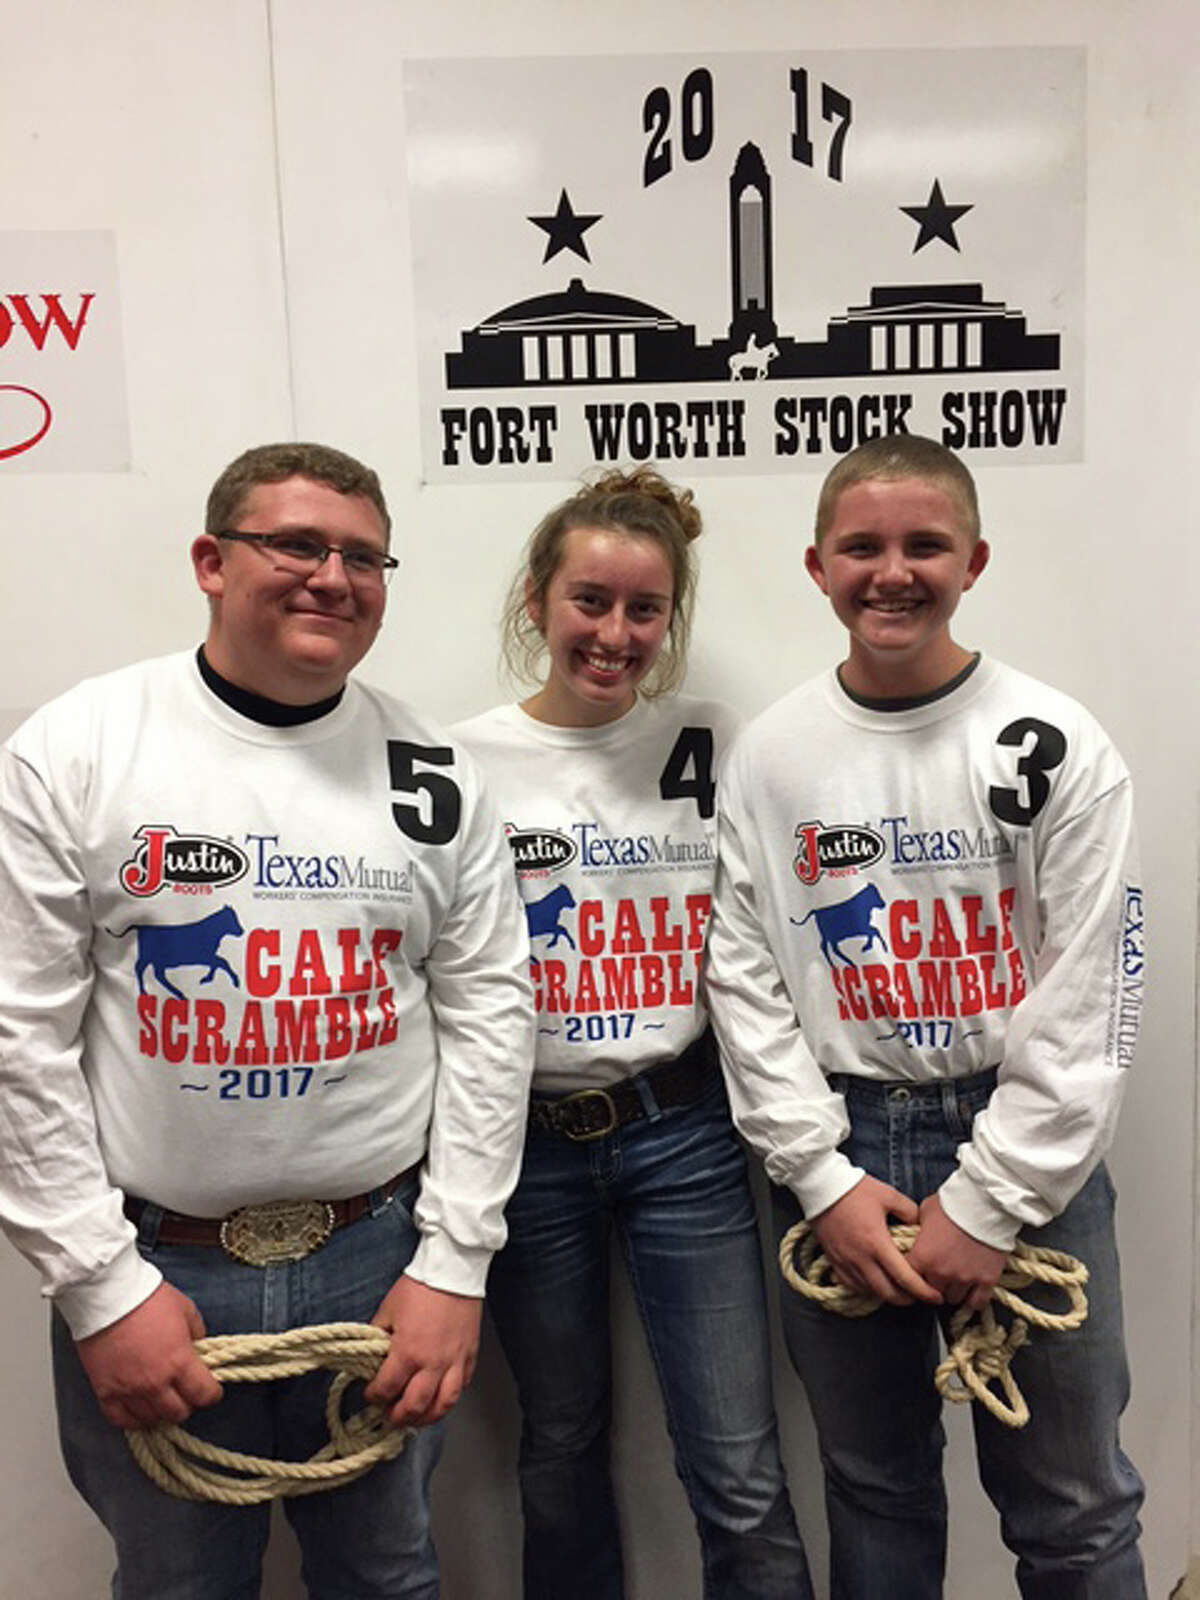 Coldspring FFA members, shown from left to right, Garrett Richardson, Sarah Heflin, Bret Carter traveled to the Fort Worth Stock Show on Sunday, Jan. 29.